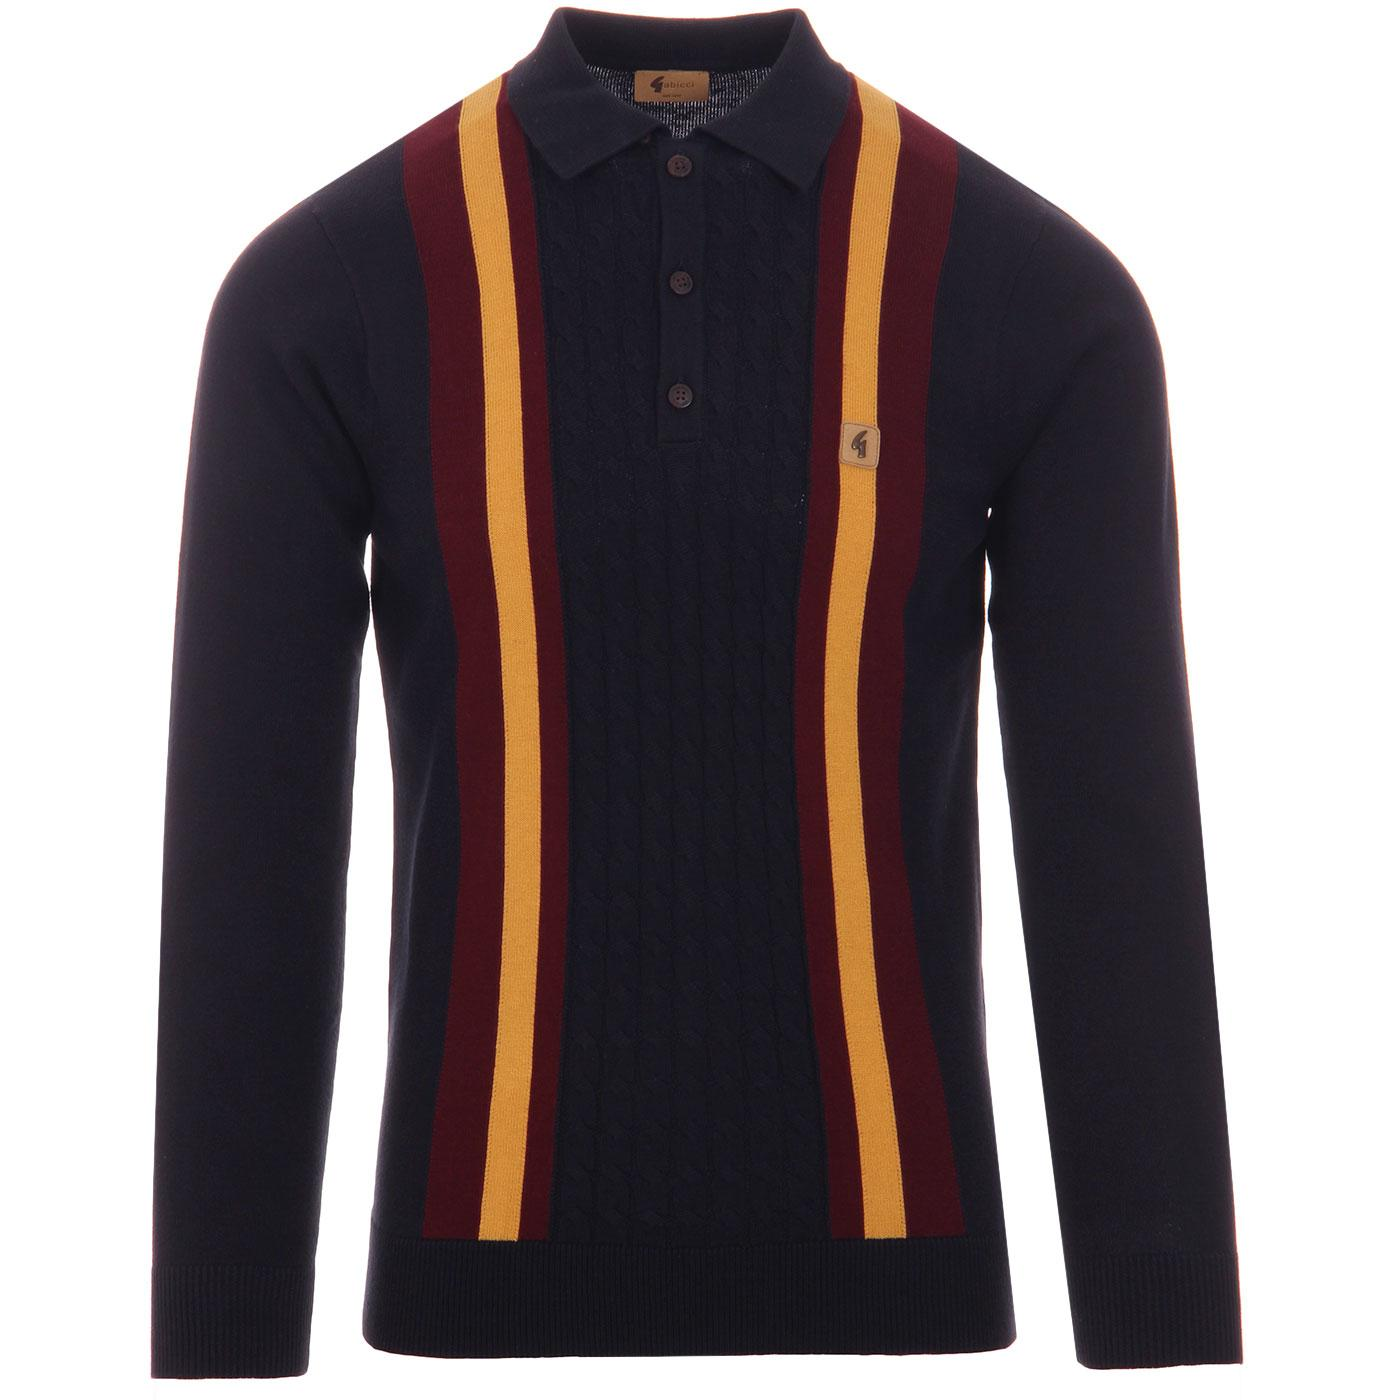 Tram GABICCI VINTAGE Mod Stripe Knit Polo Top NAVY